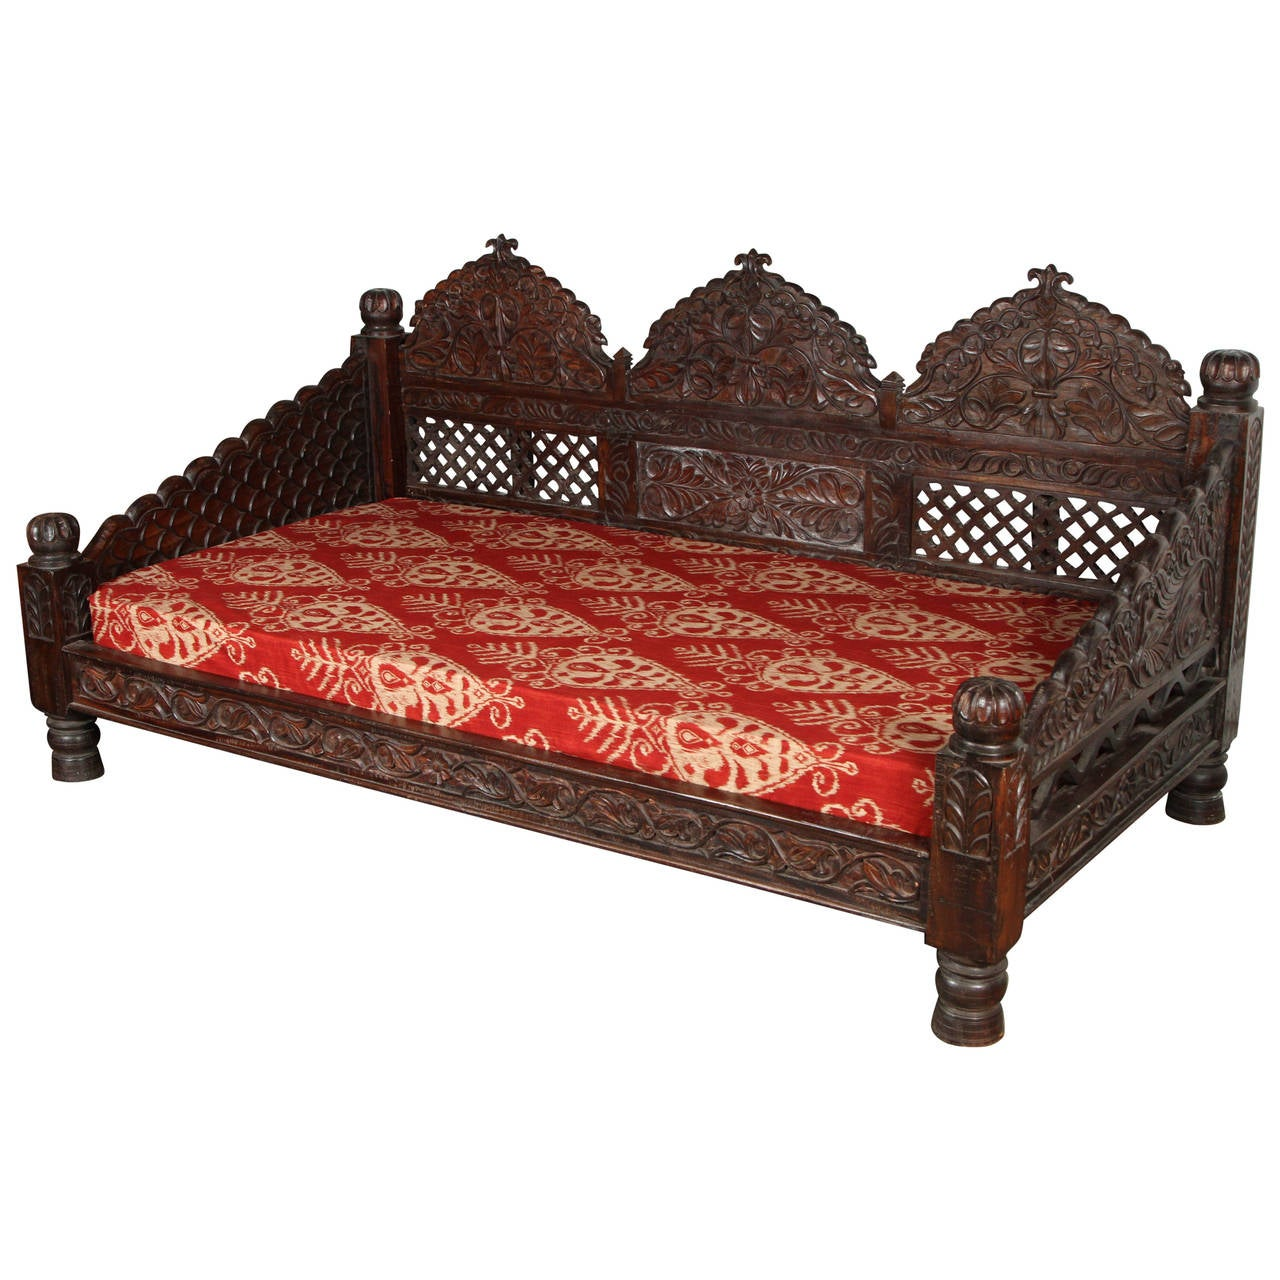 Anglo Raj Indian Daybed at 1stdibs